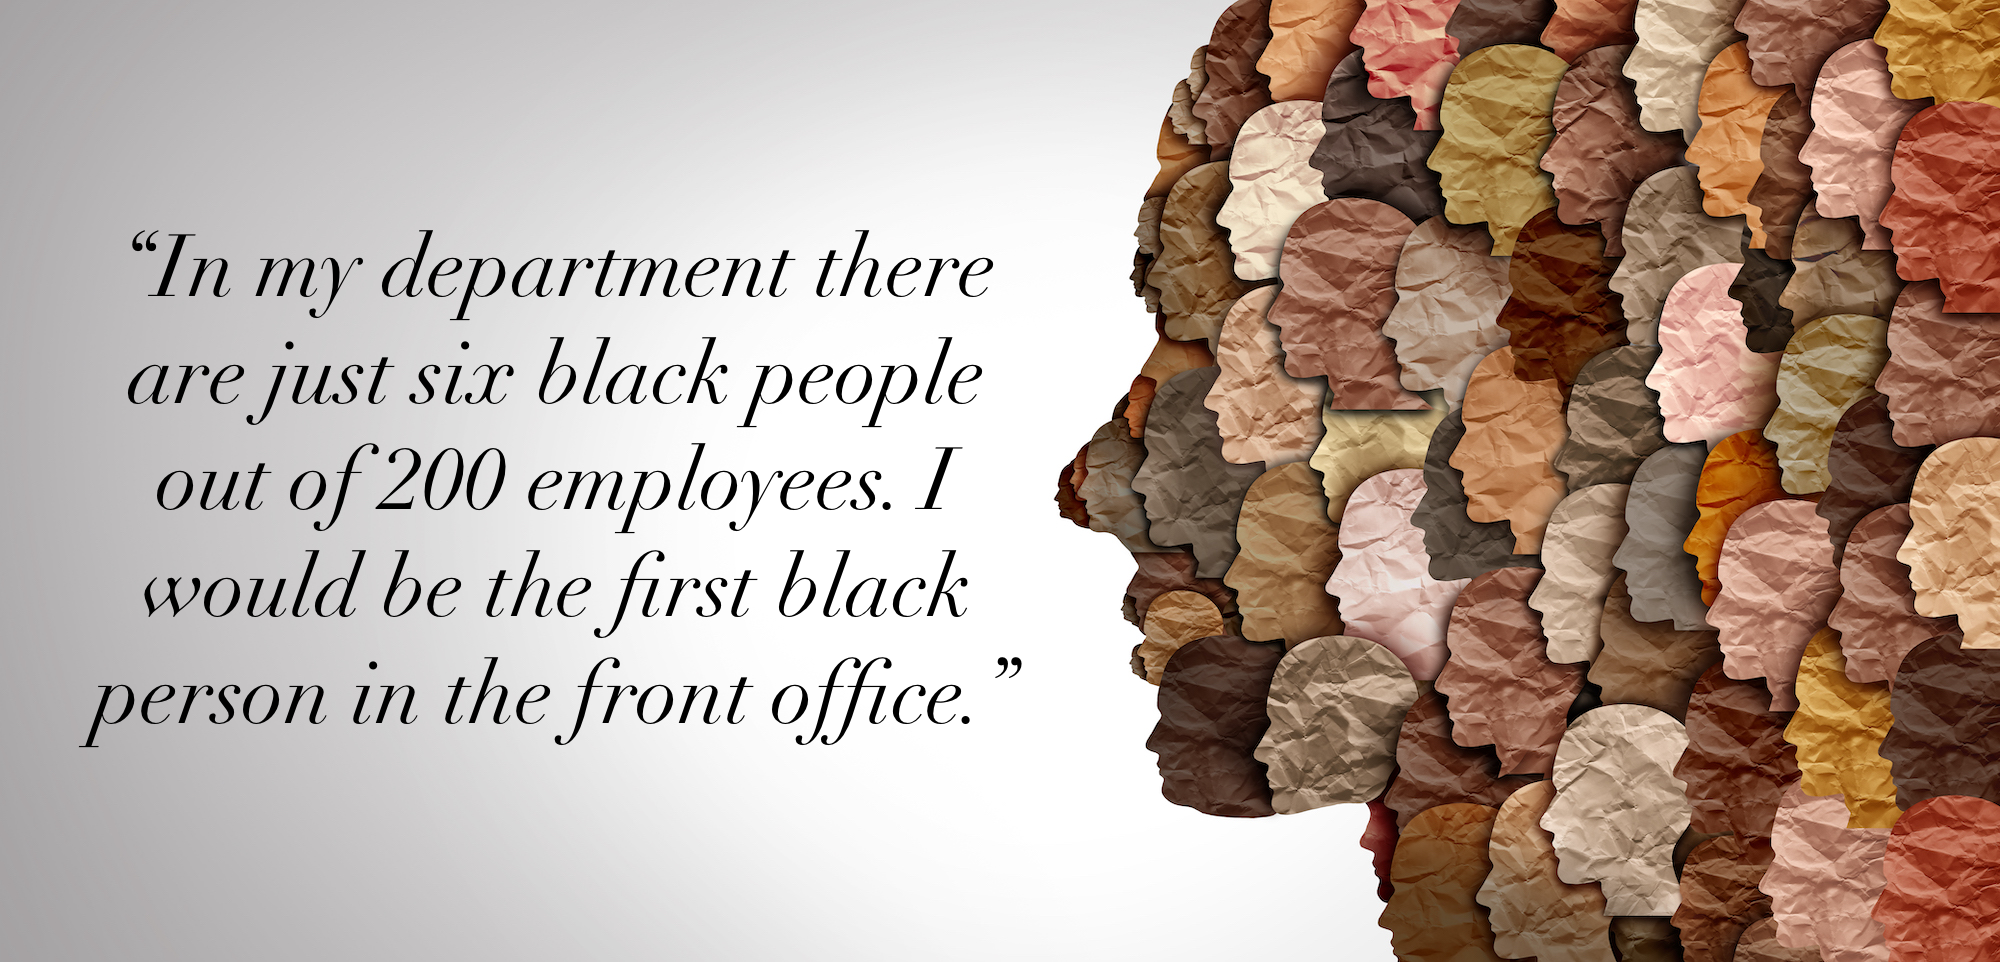 From school to front office: how ethnic minority candidates face subtle discrimination